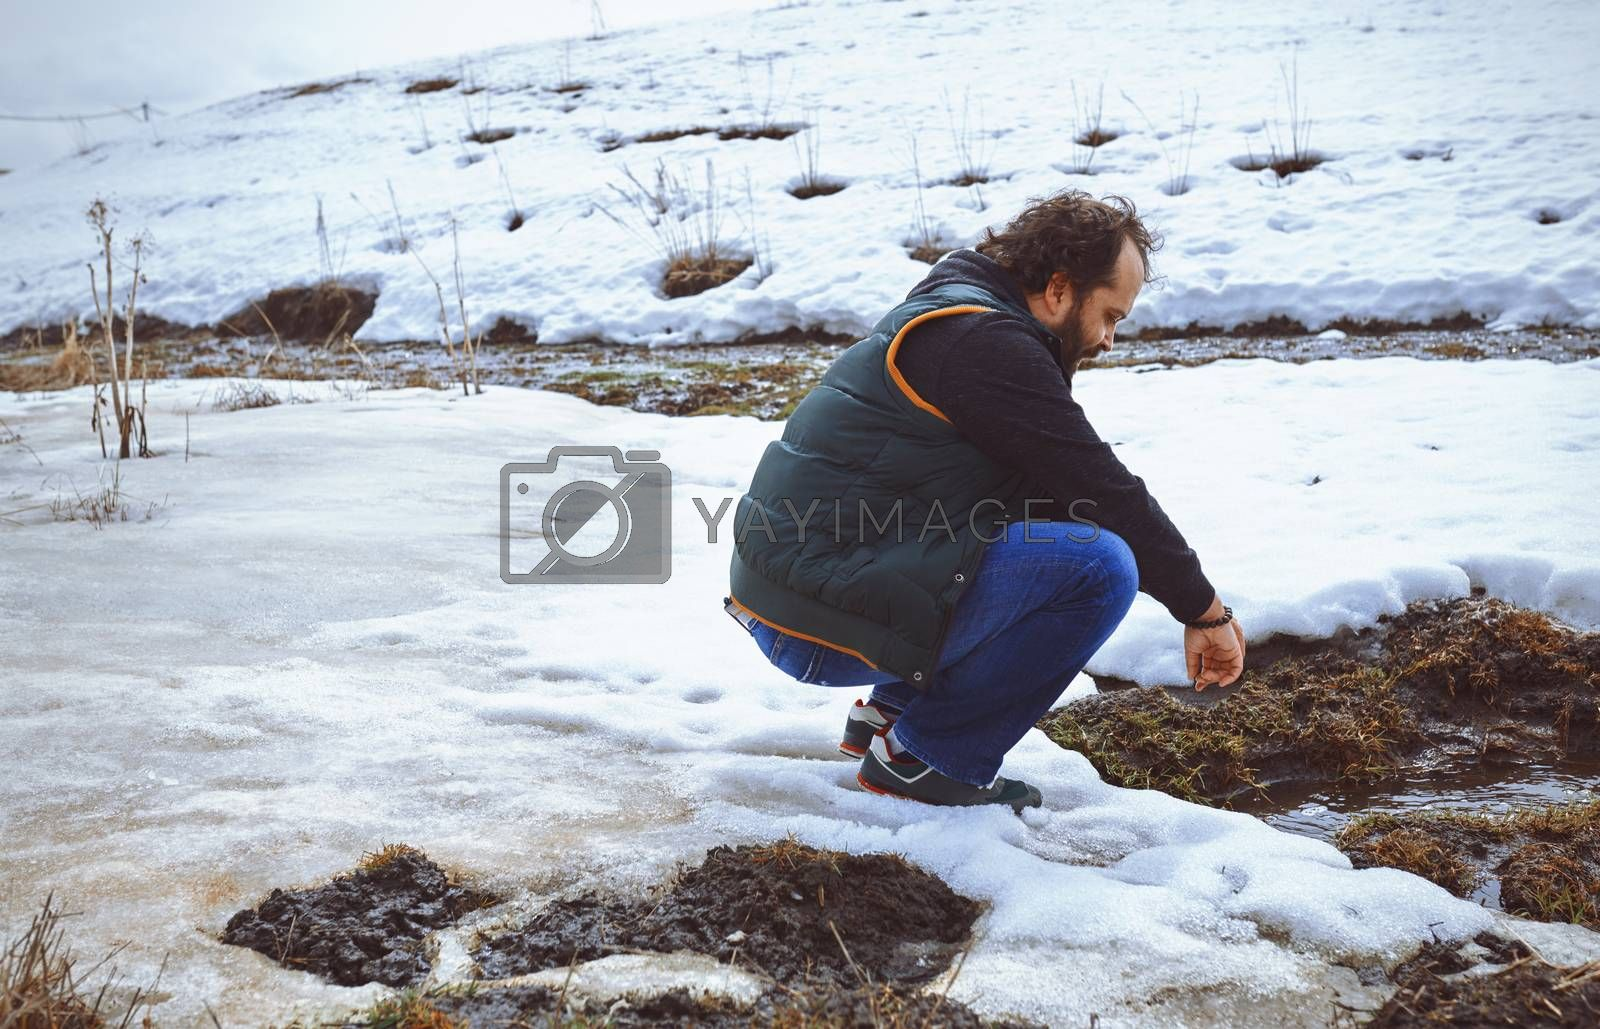 Traveller squatting at the snowy marsh